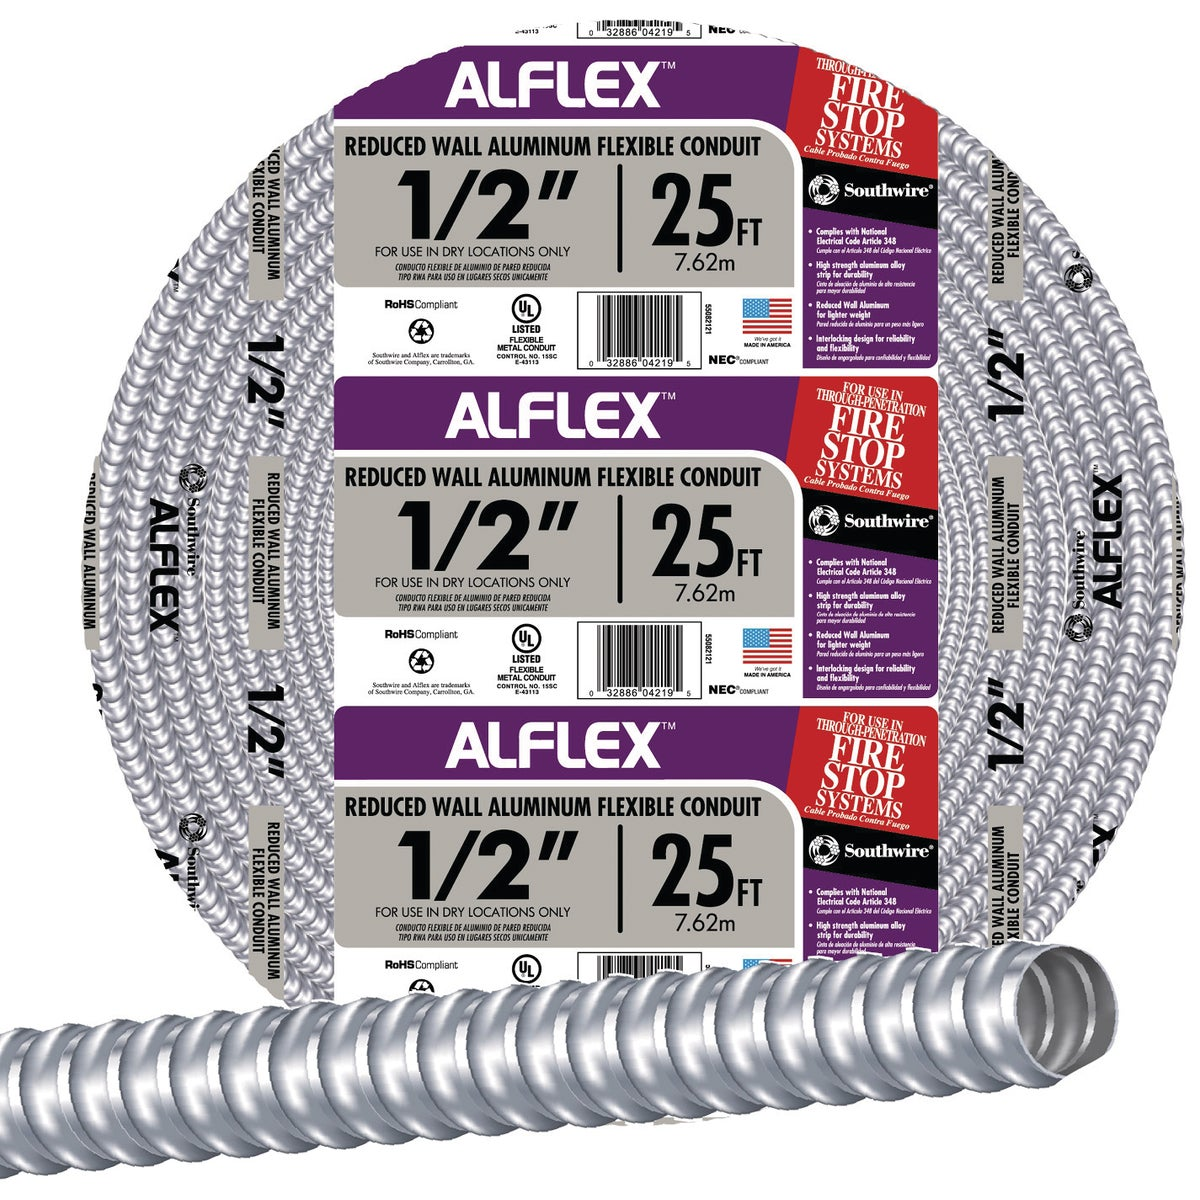 "25' 1/2"" FLEX CONDUIT - 55082121 by Southwire Company"